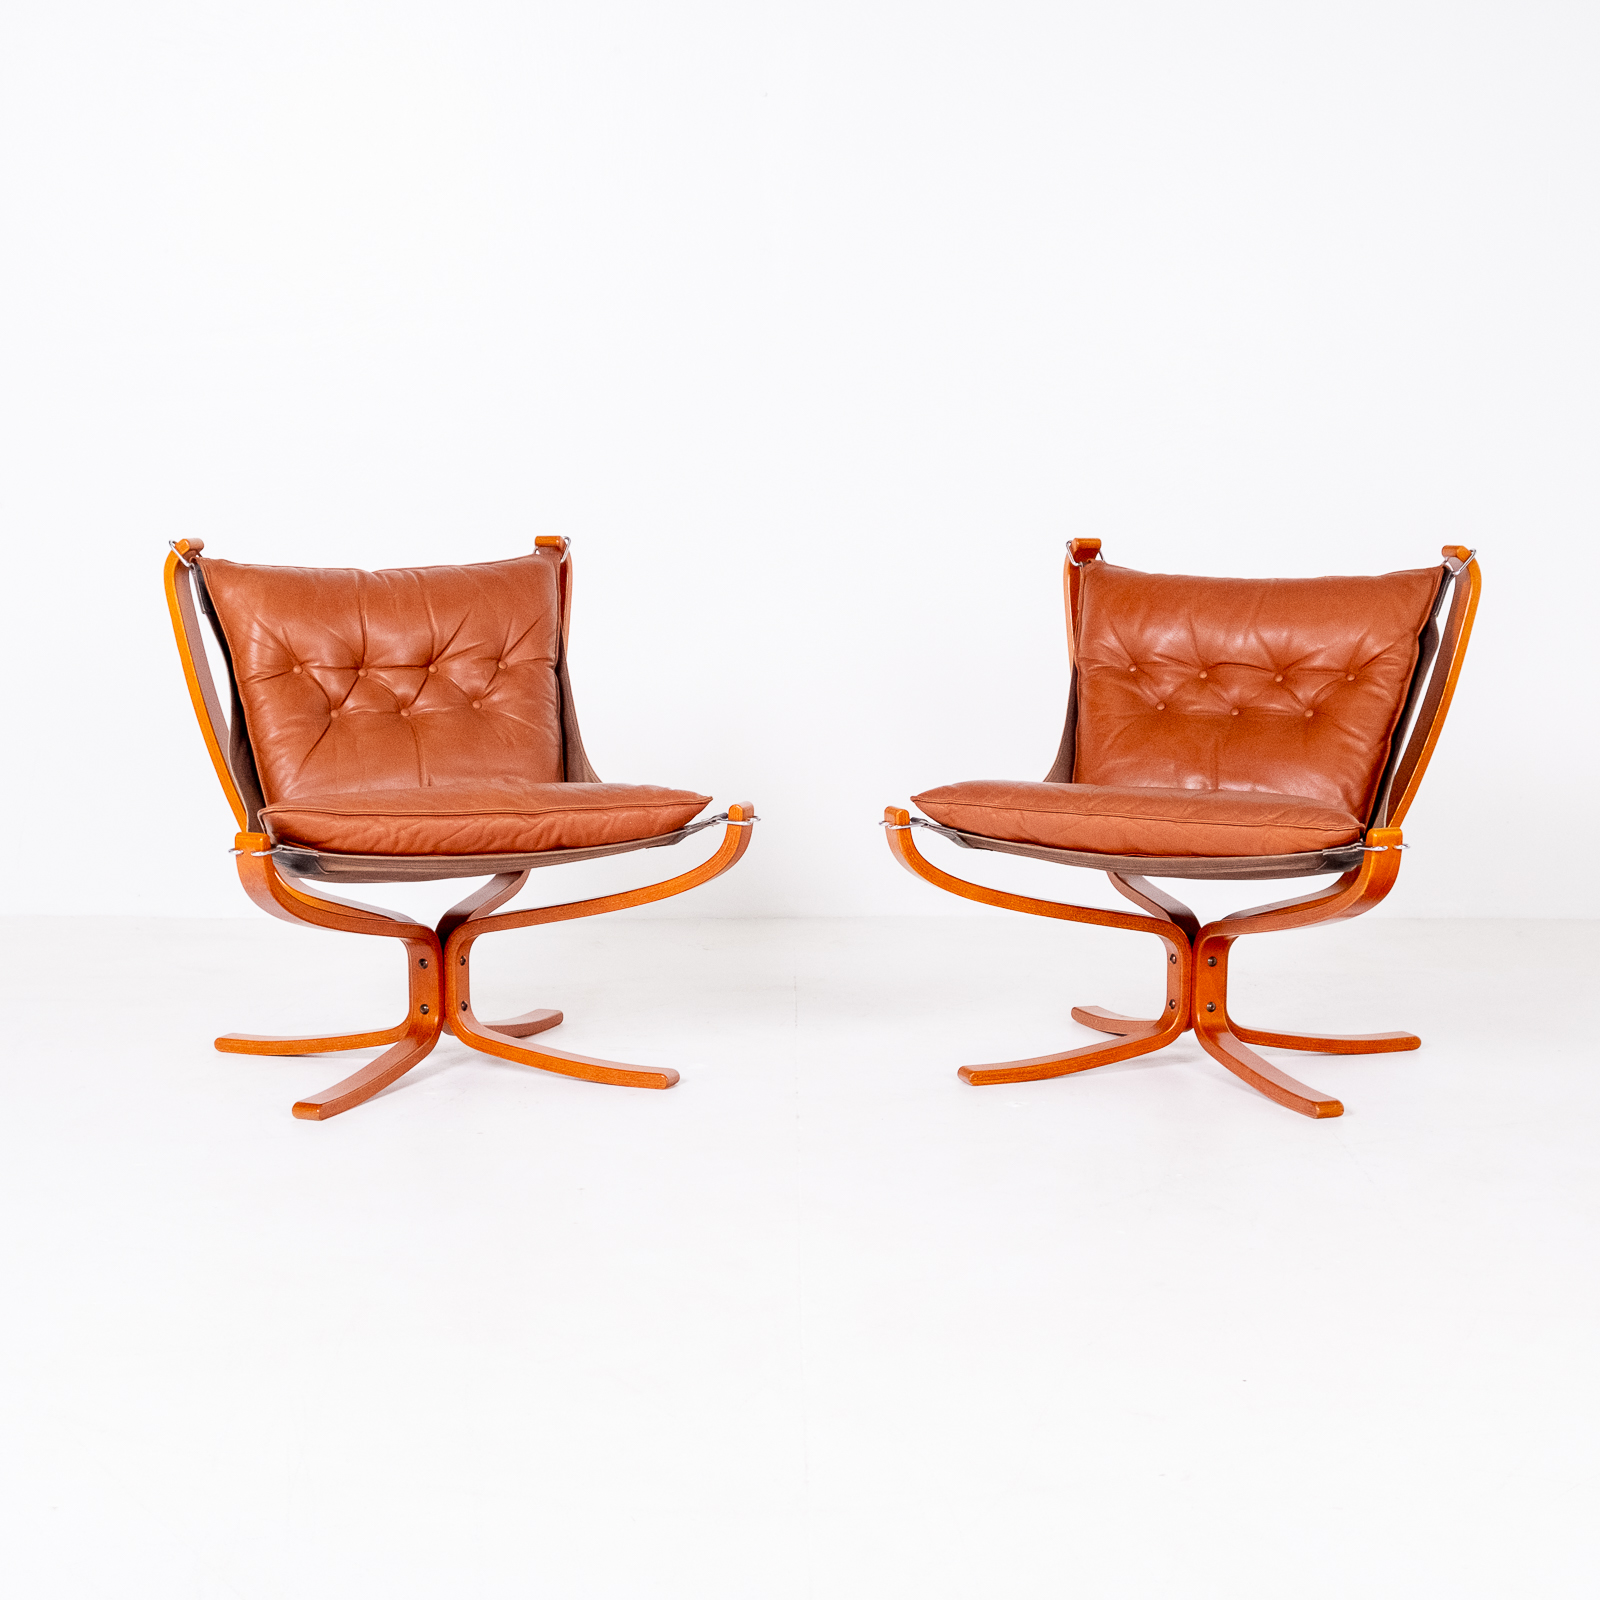 Low Back Falcon Armchair In Tan Leather By Sigurd Ressell For Vatne Mobler, 1971, Norway 01